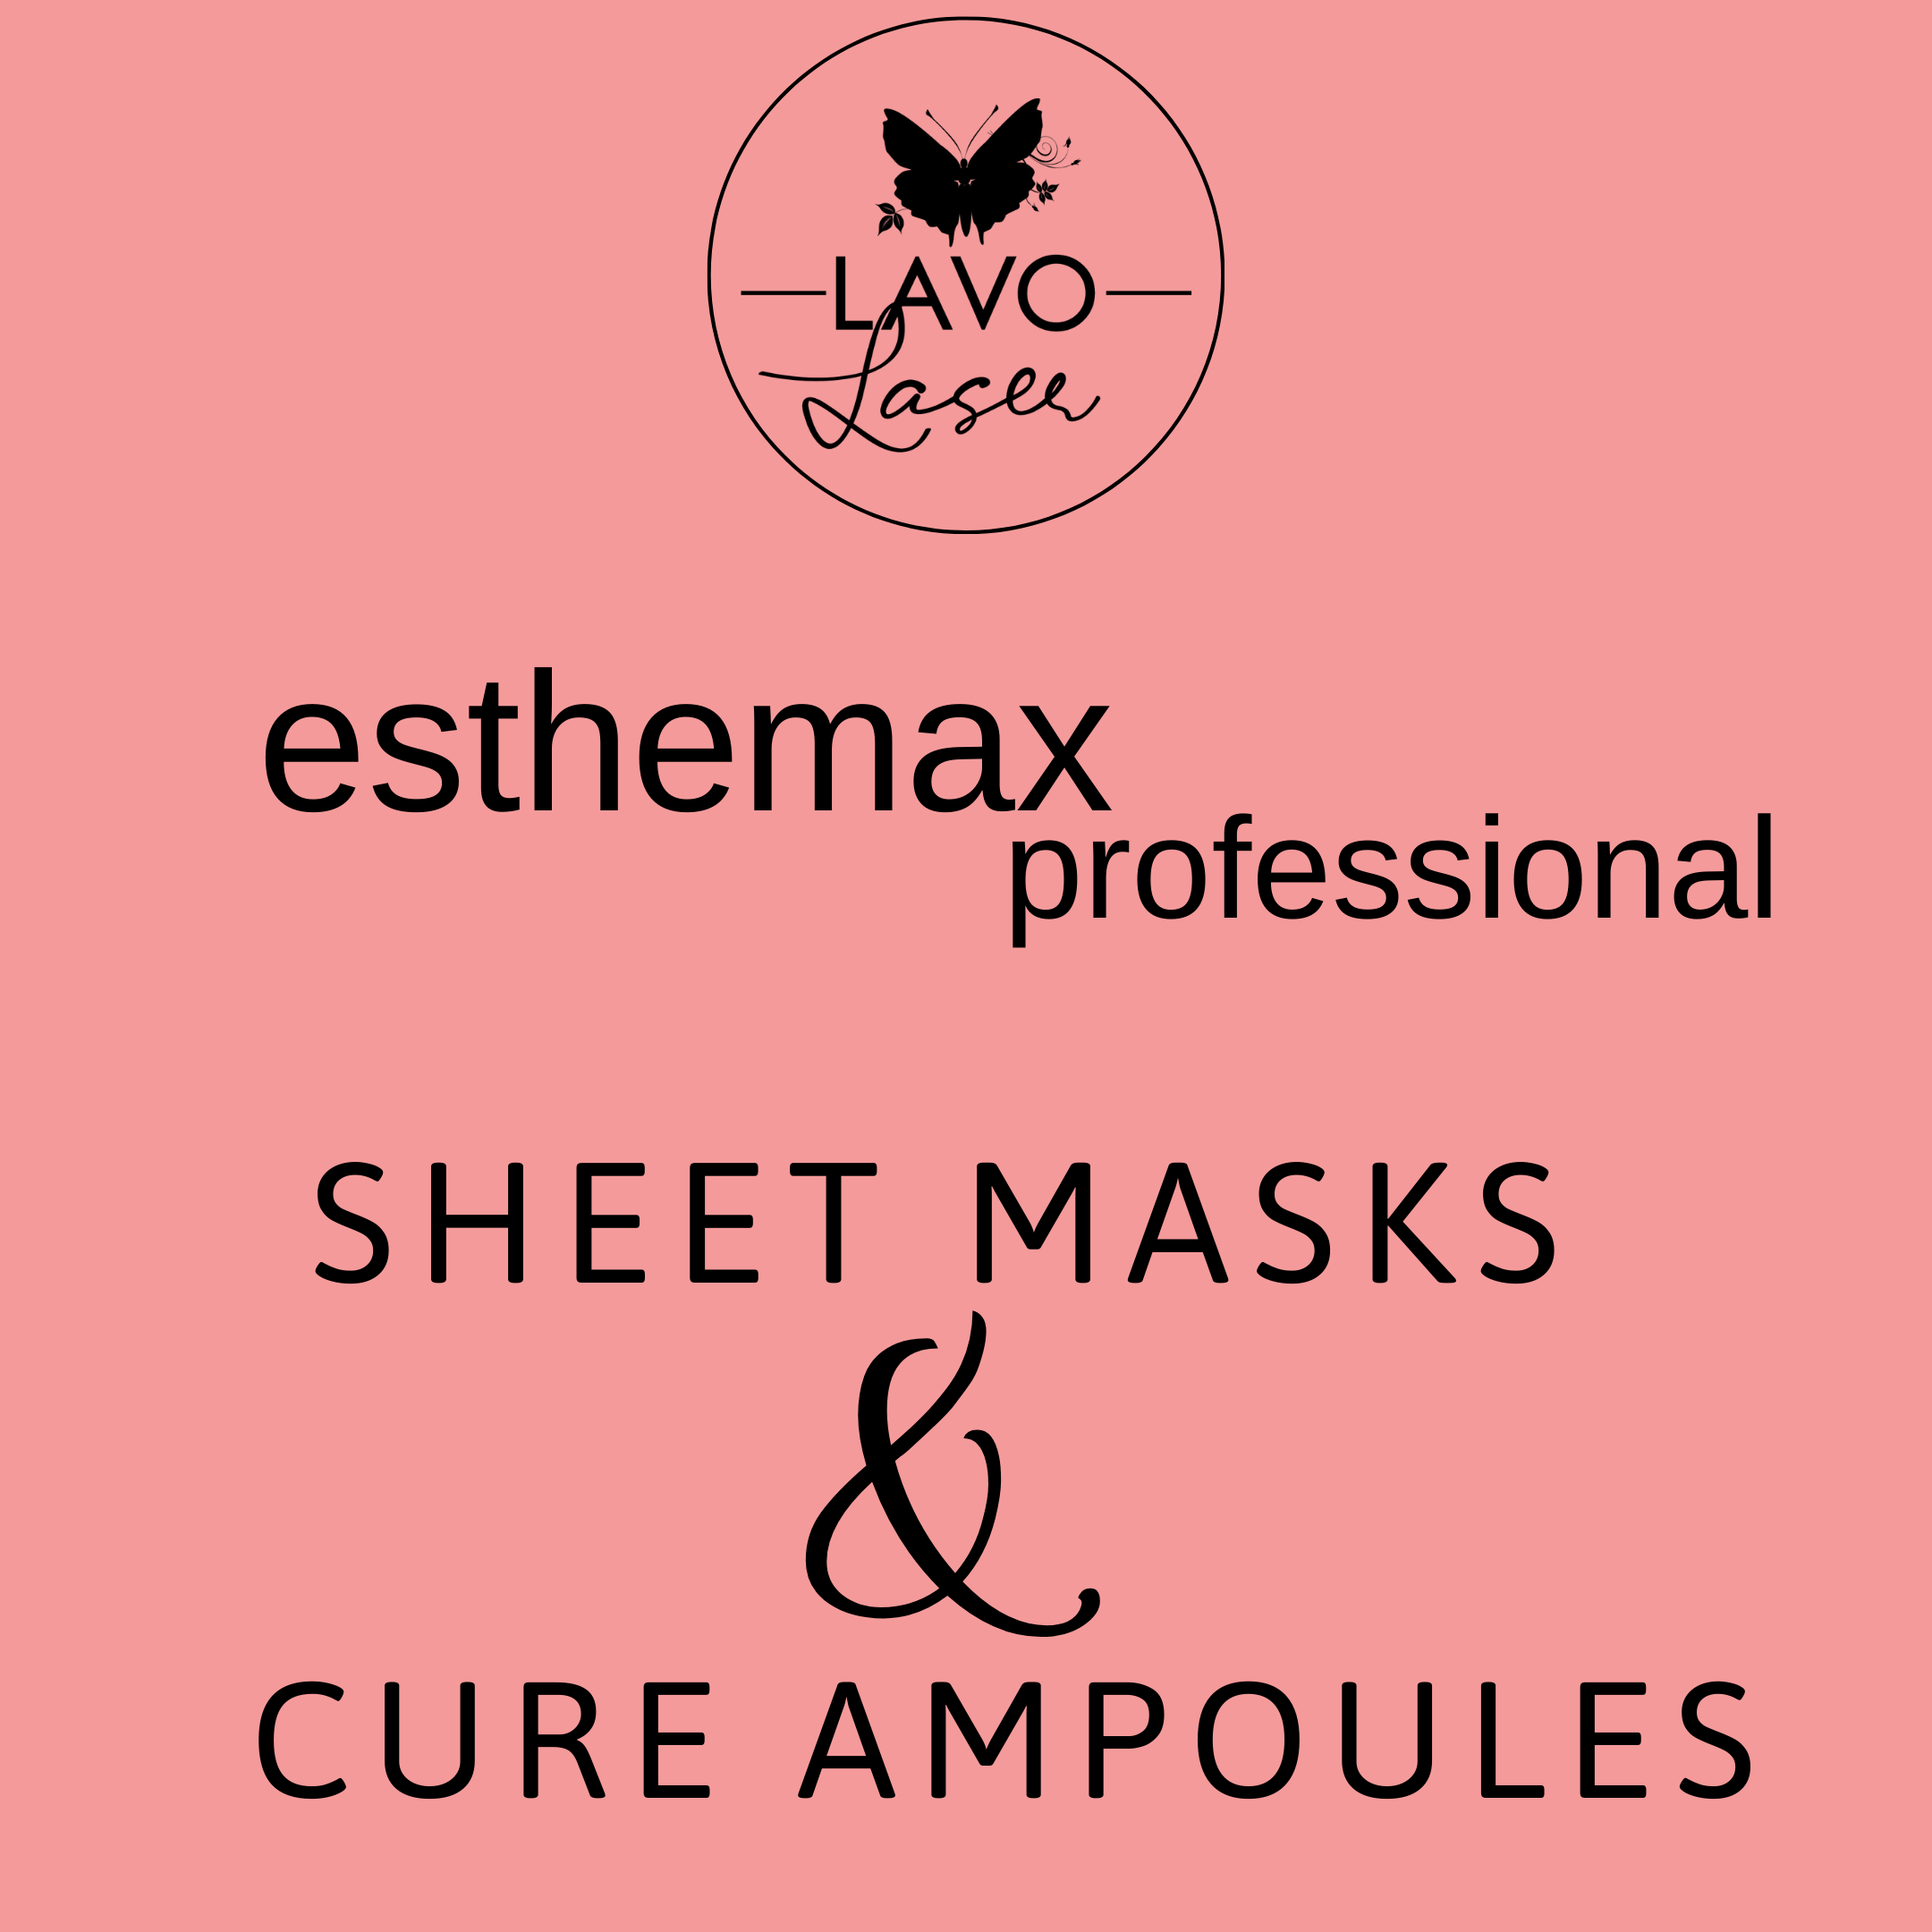 SHEET MASK CURE AMP